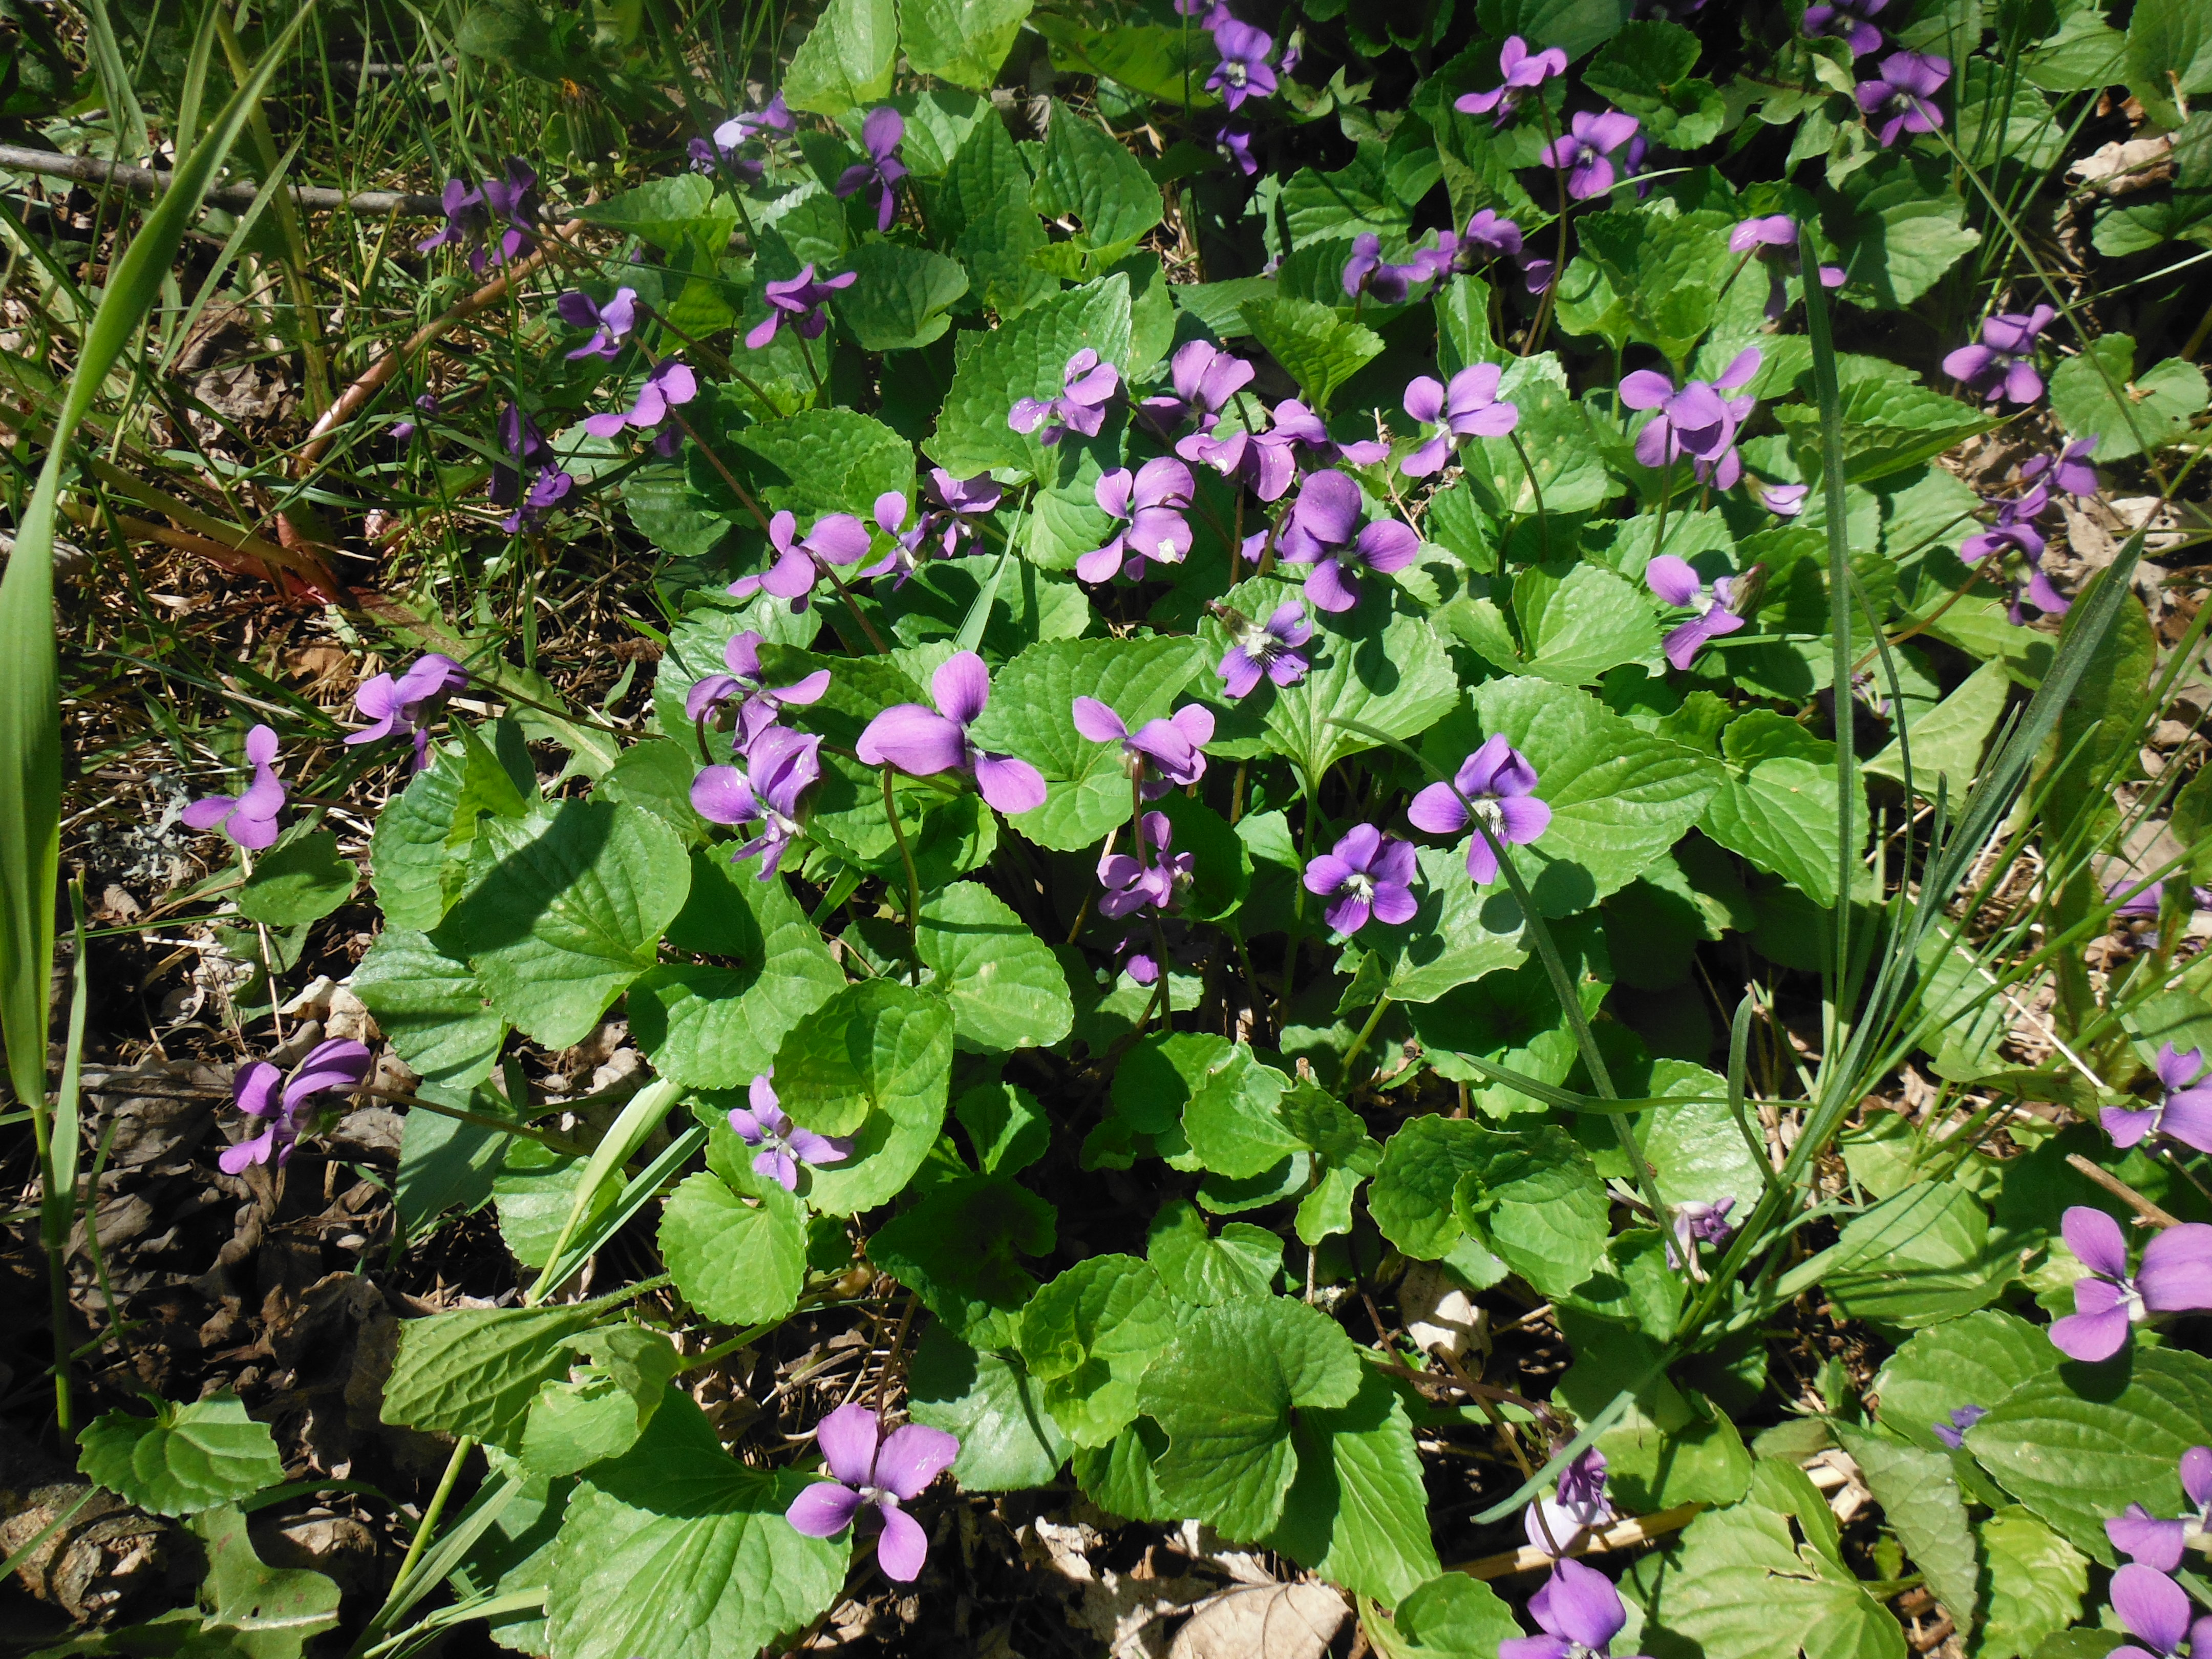 Beautiful violets on the way to the Pond